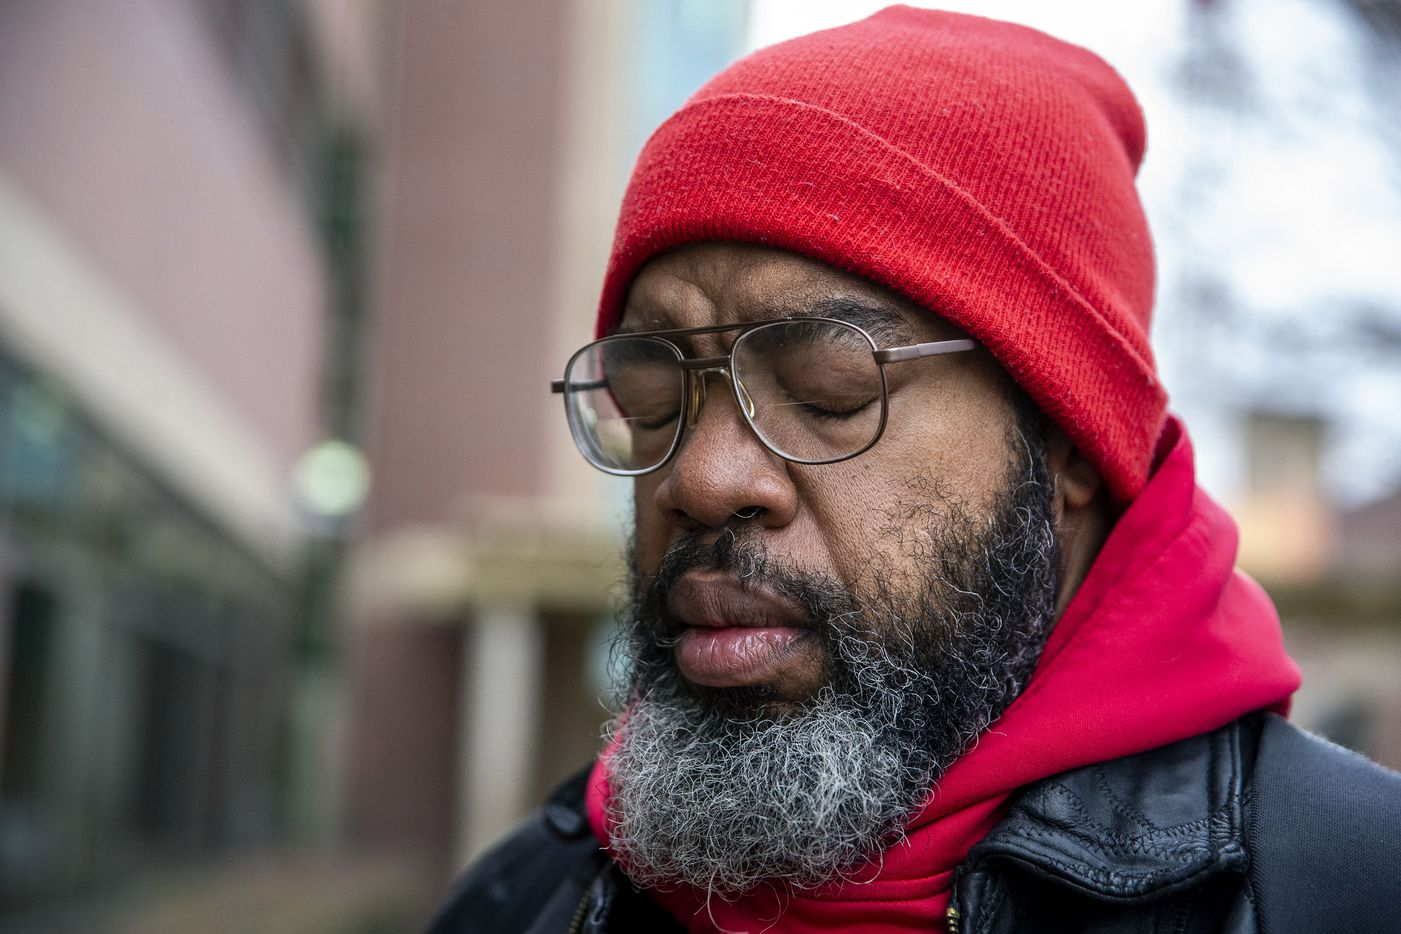 Randy took a moment to regain his composure while heading back to his room at The Bridge Homeless Recovery Center on Jan. 11, 2020. His serious health problems in mid-2019 triggered a series of events that pushed him into poverty, without a social safety net to catch him.